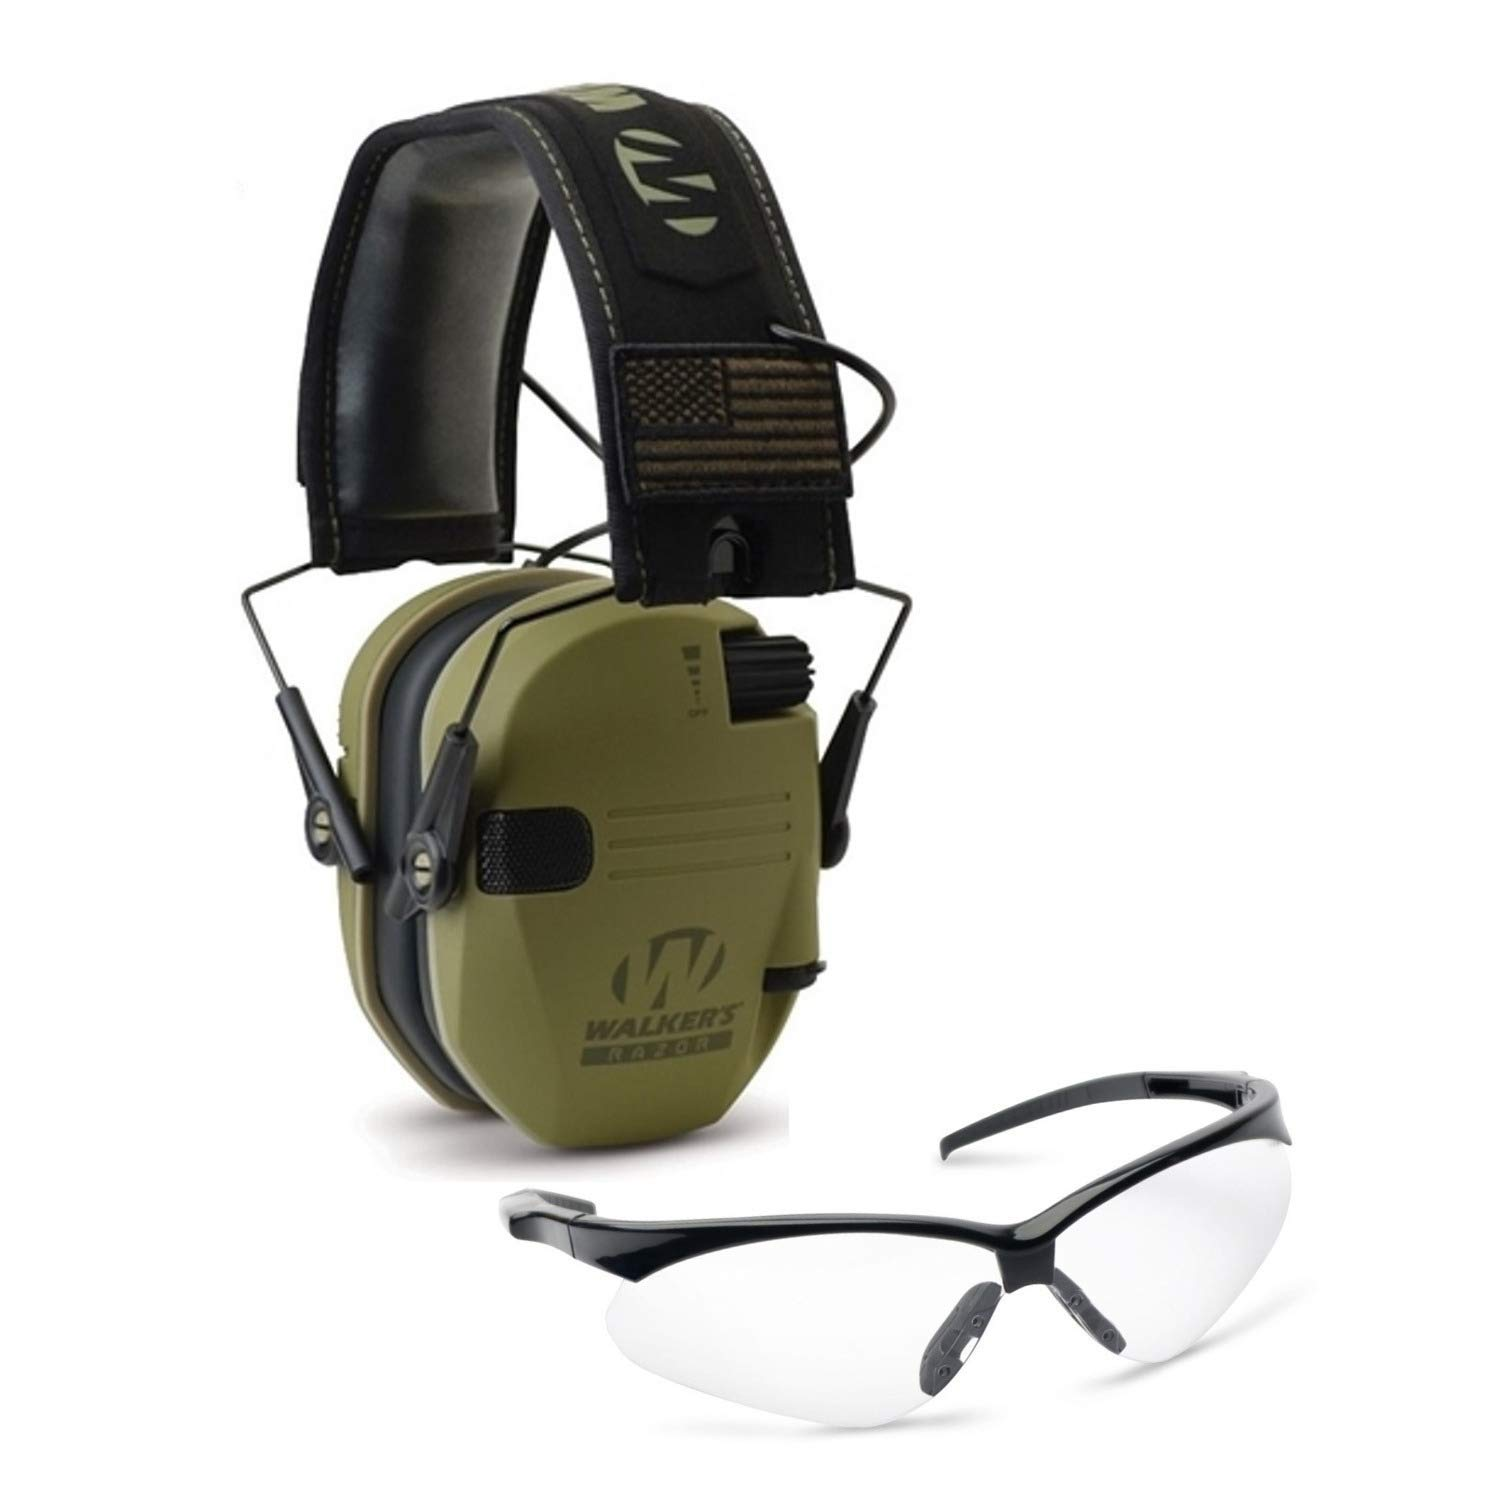 Walkers Razor Slim Electronic Hearing Protection Muffs with Sound Amplification and Suppression and Shooting Glasses Kit, OD Olive Drab Green Patriot by Walkers (Image #1)